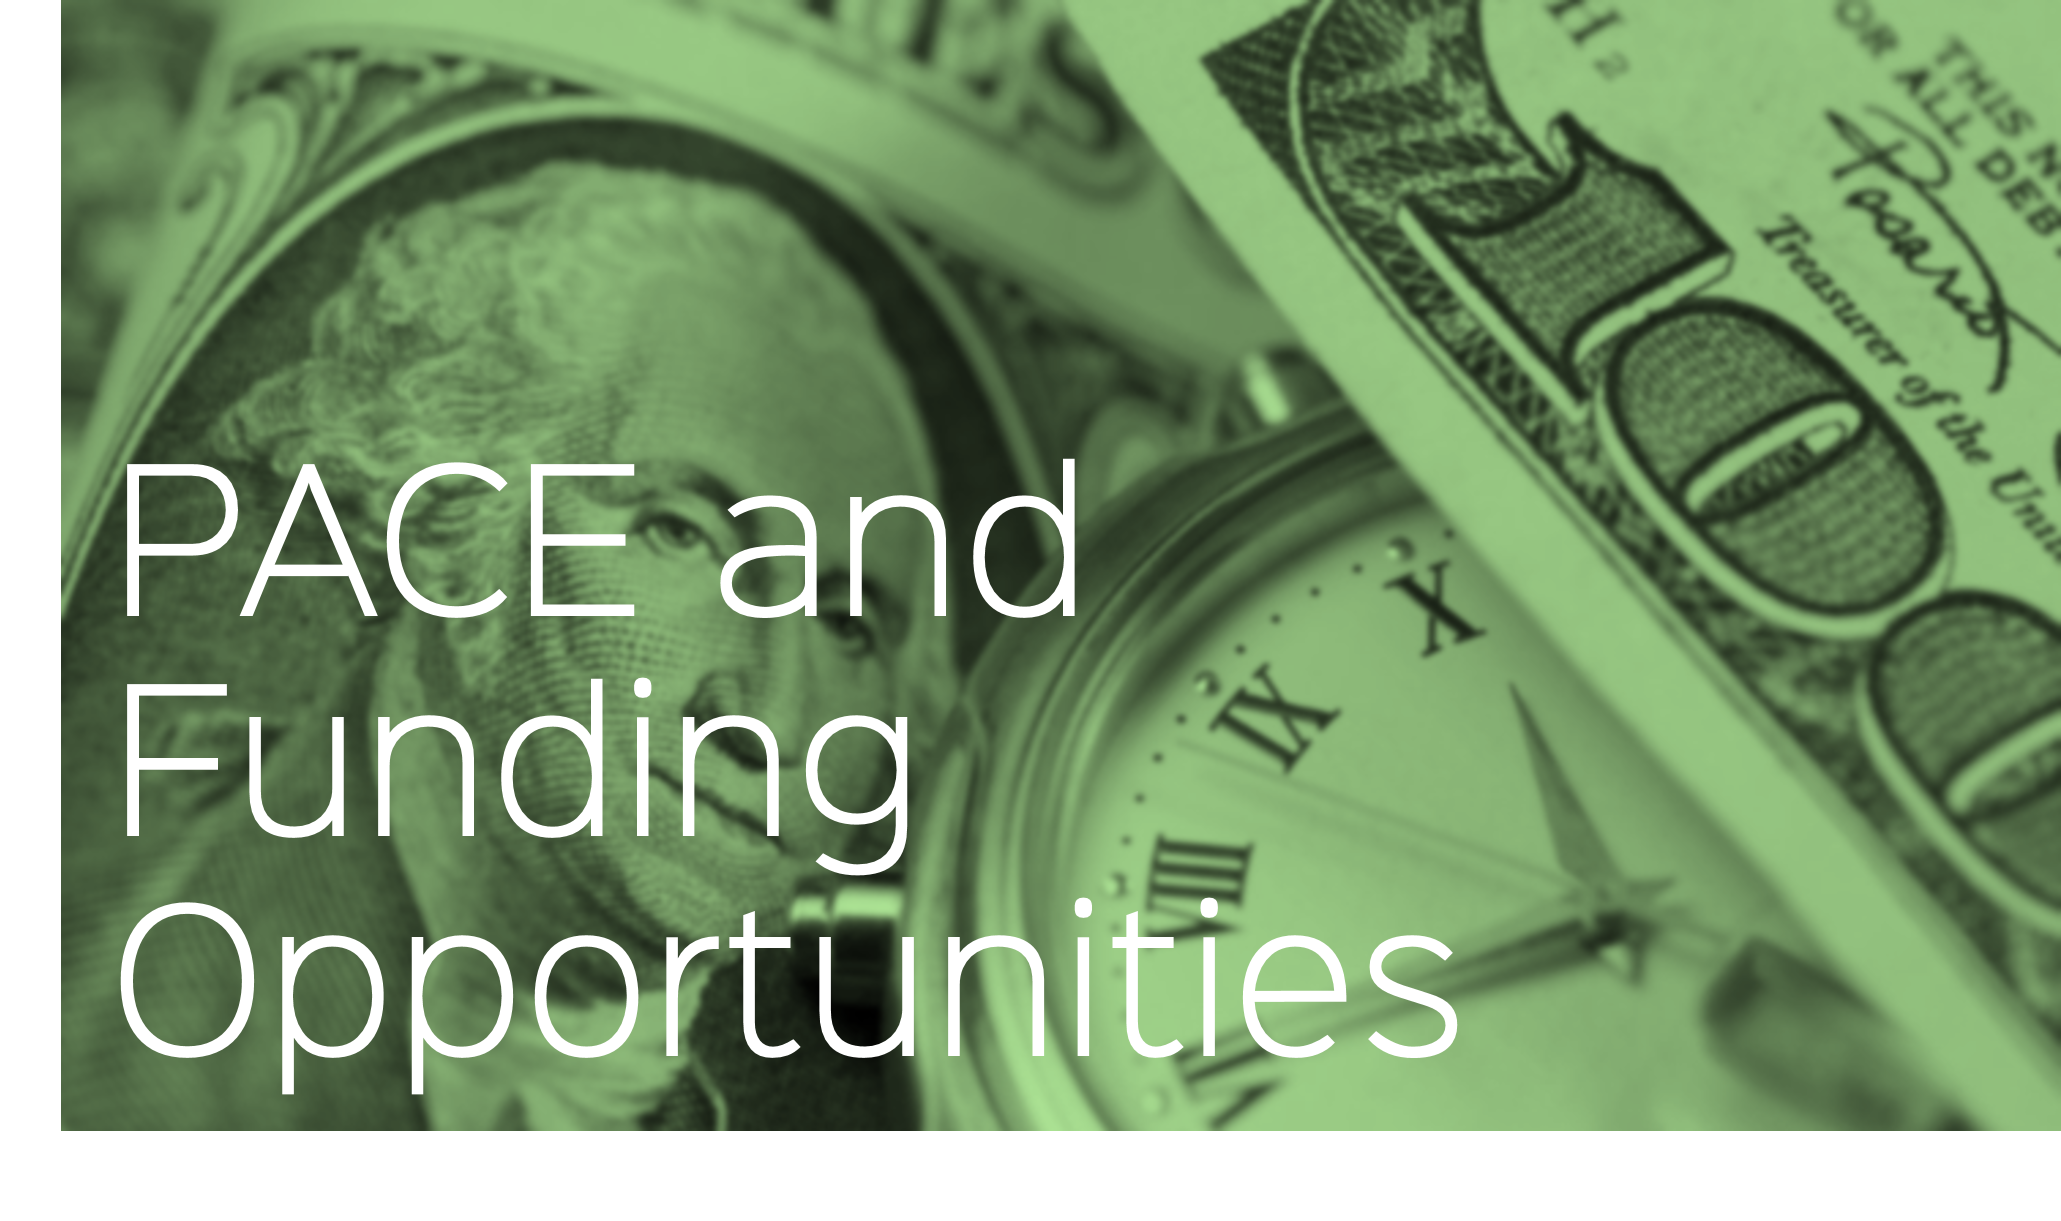 Funding Opportunities for PACE